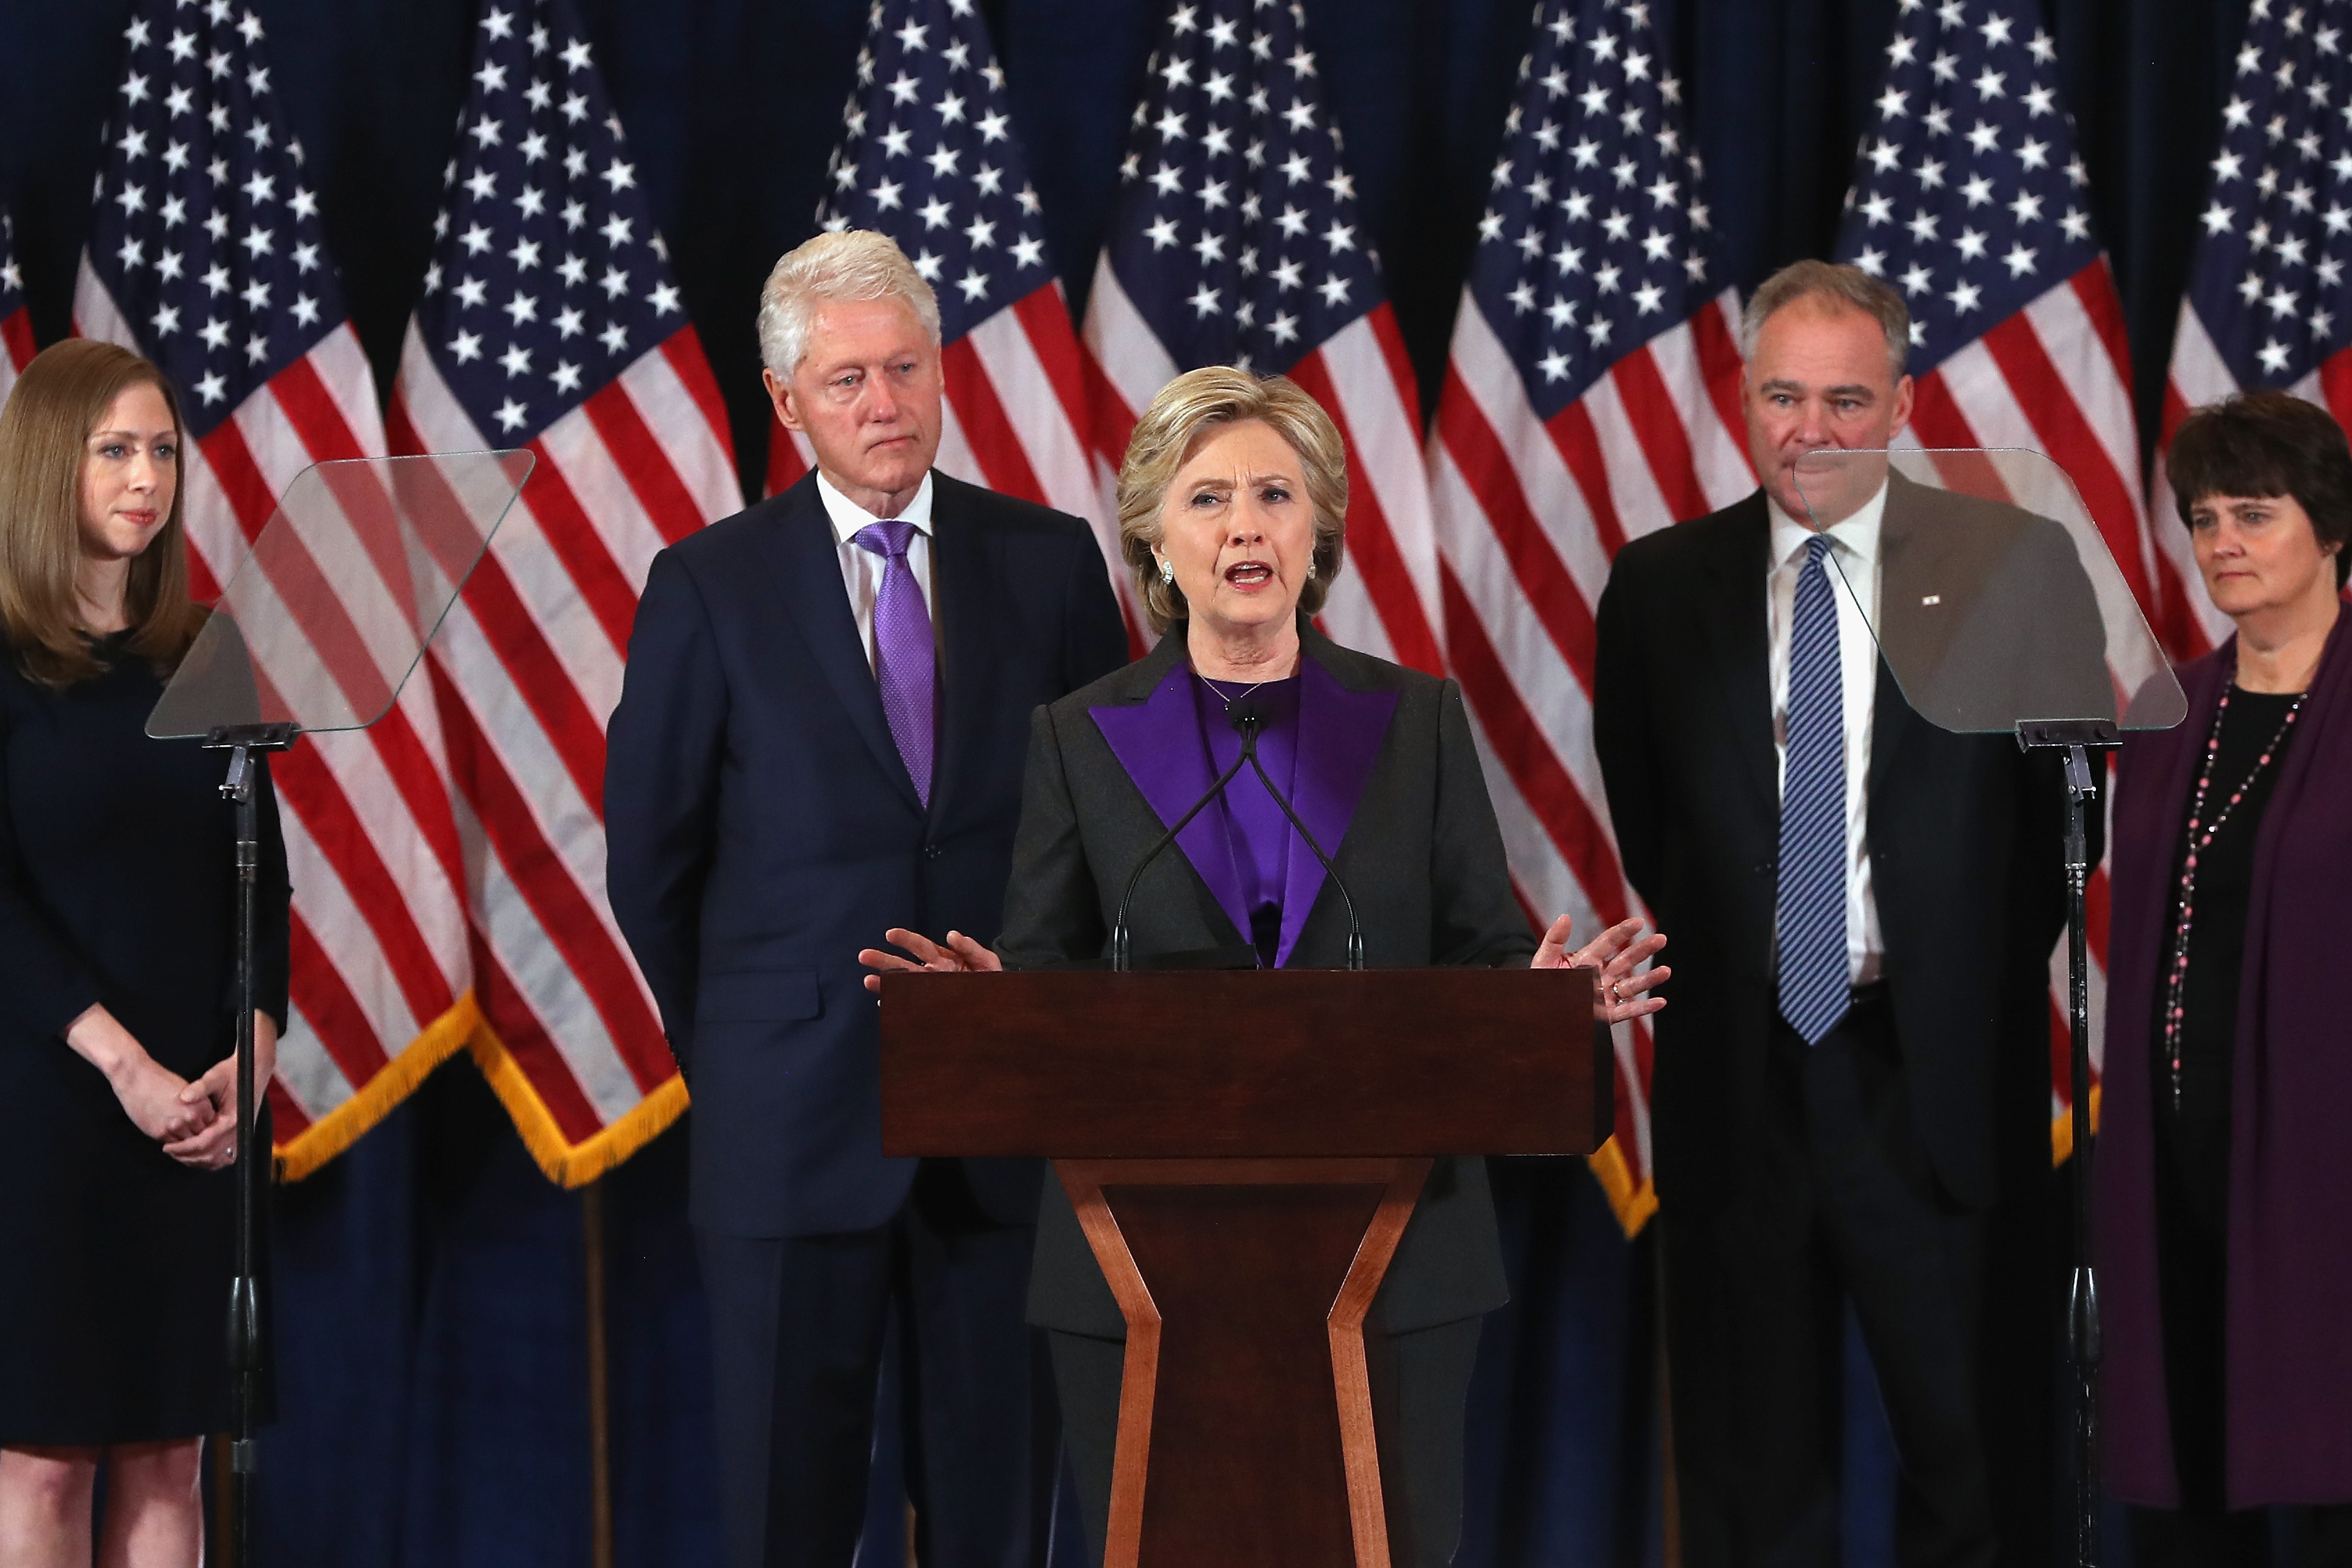 Former Secretary of State Hillary Clinton concedes the presidential election as (L-R) Chelsea Clinton, Bill Clinton, Tim Kaine and Anne Holton listen at the New Yorker Hotel on November 9, 2016 in New York City.